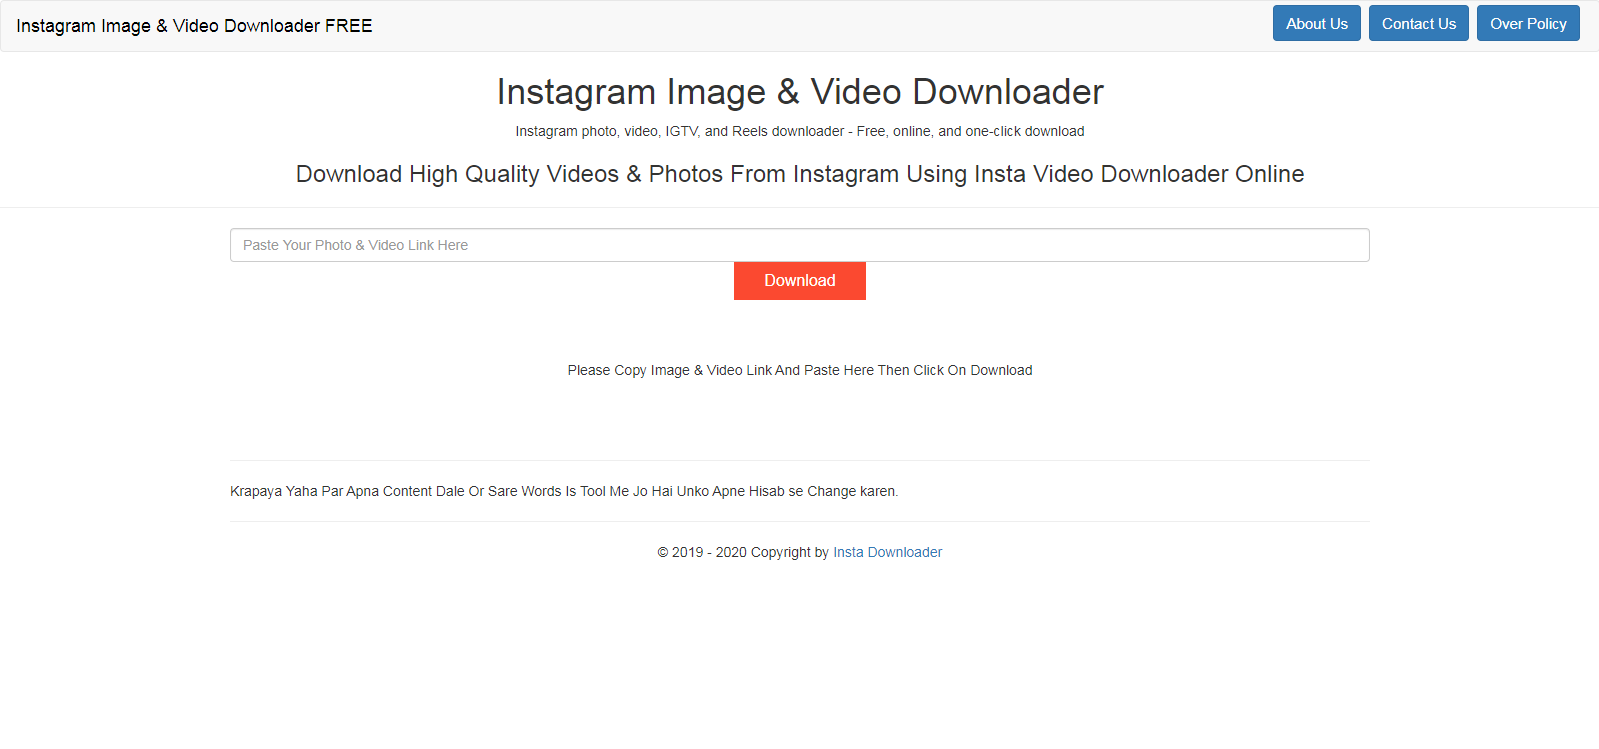 How To Download Instagram Video Online MP4 Full HD - Free Tools Online